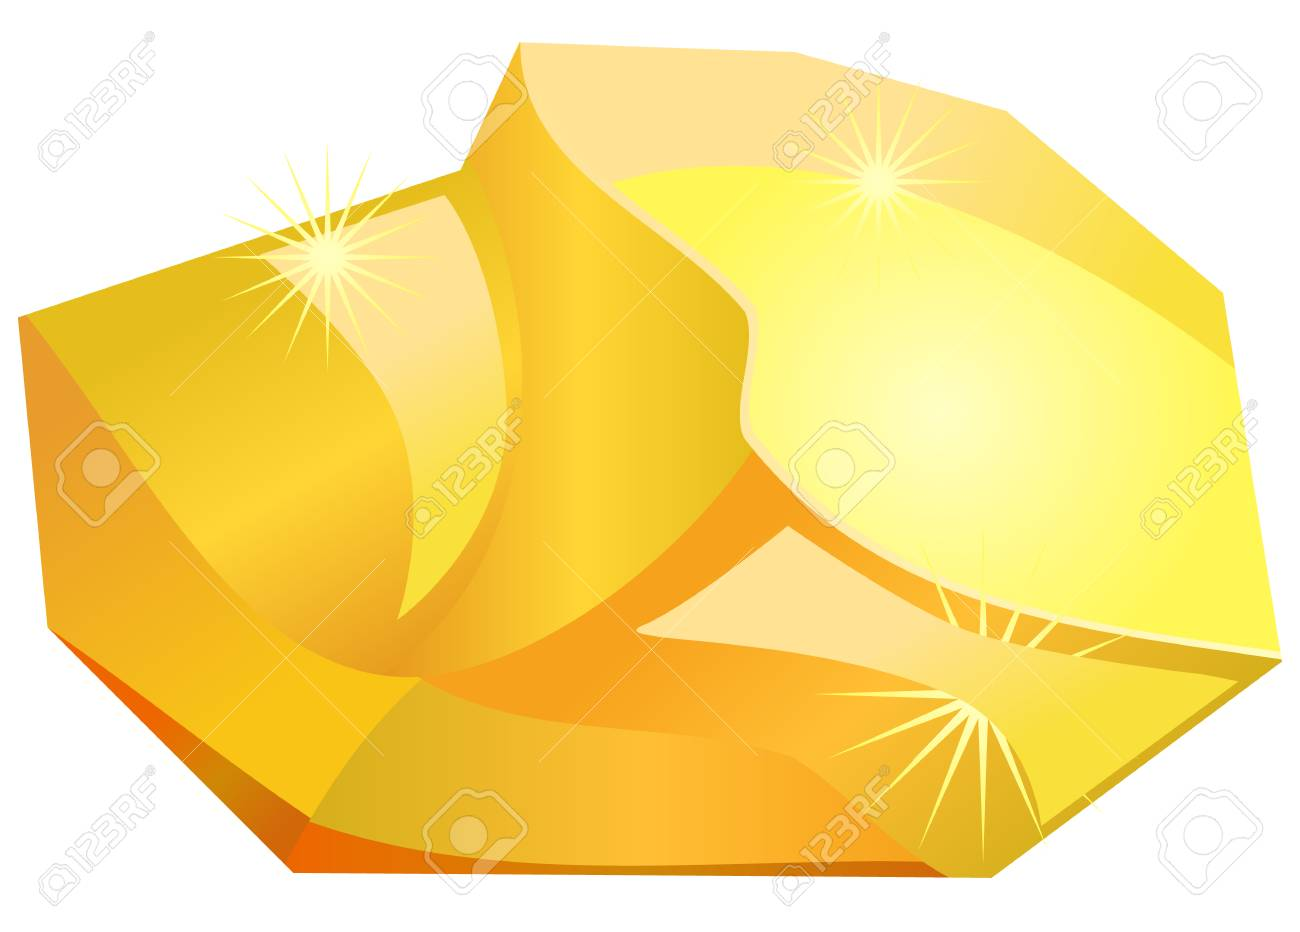 Gold nugget clipart 5 » Clipart Station.